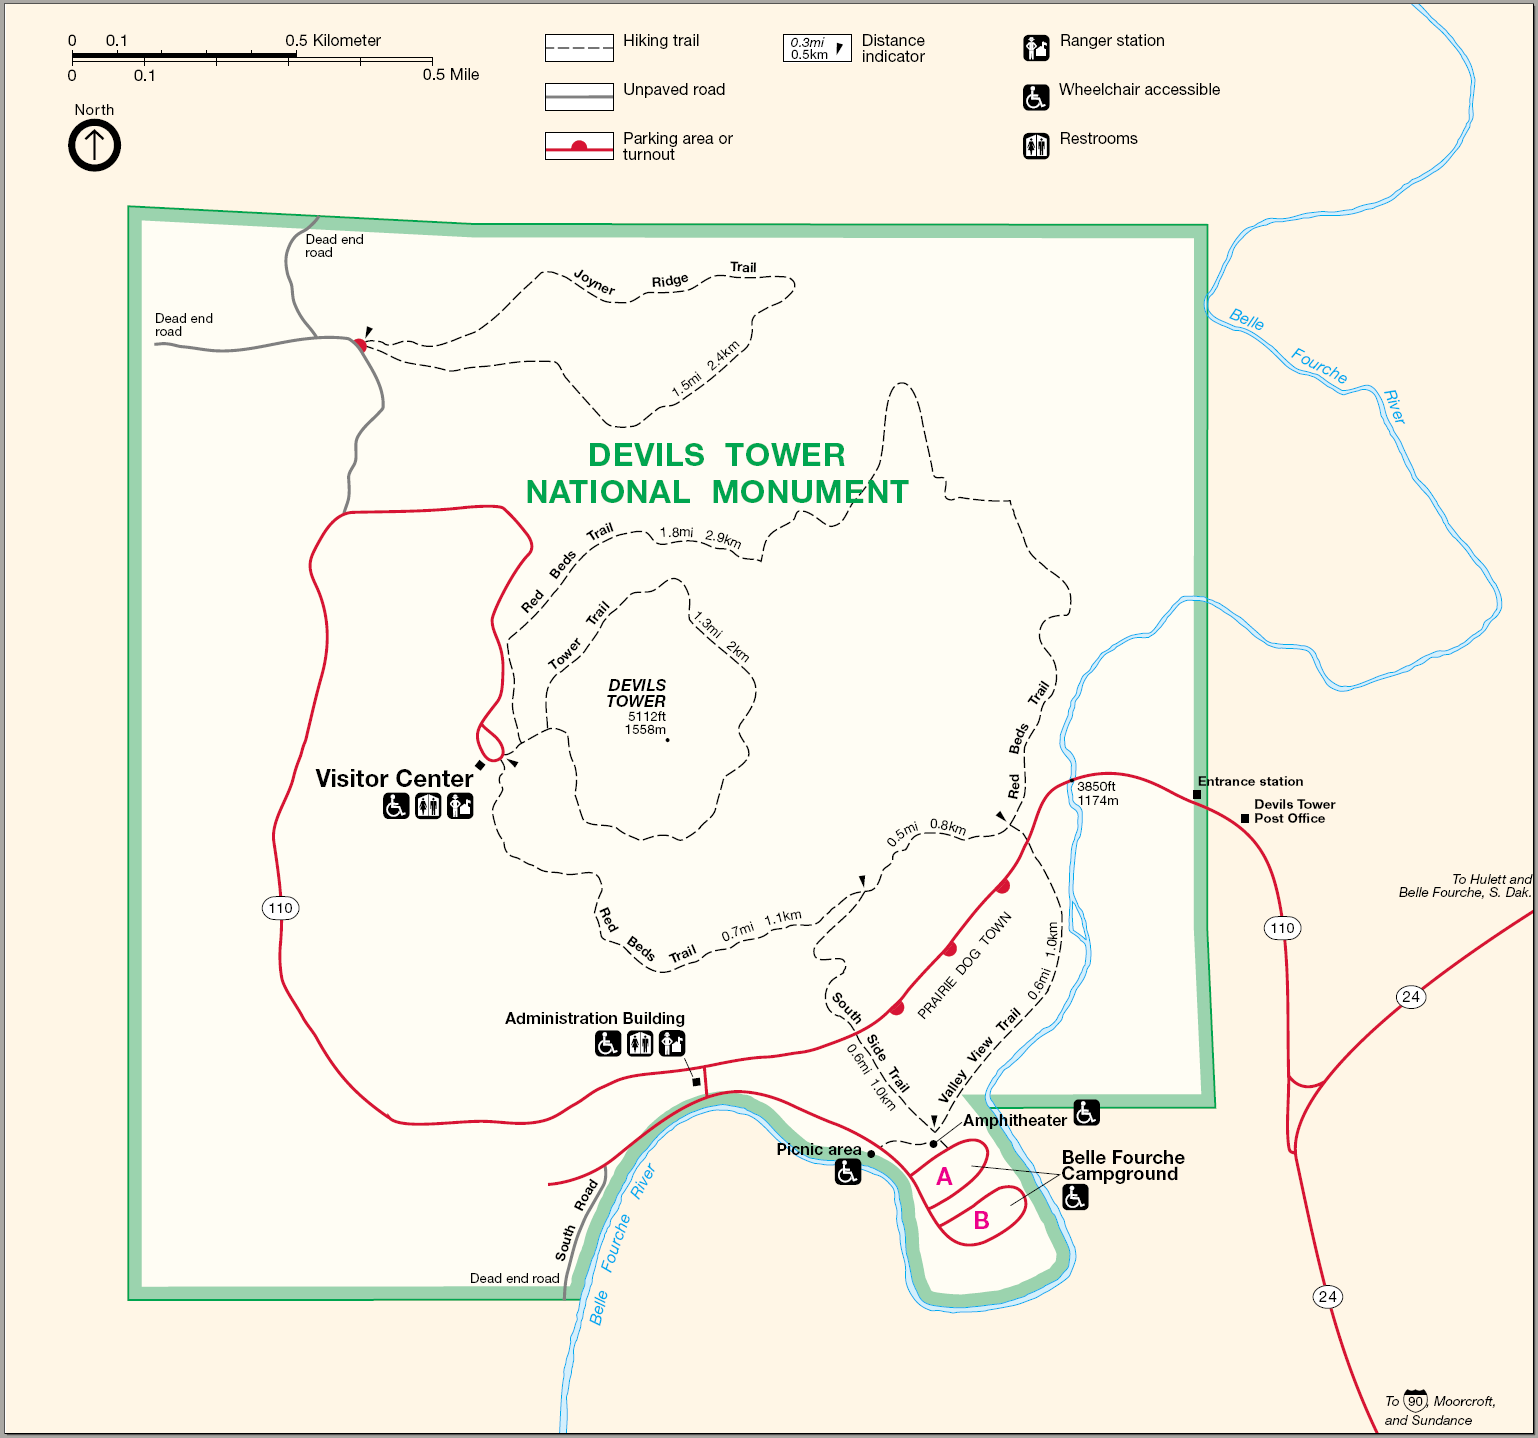 Filemap of devils tower national monumentg wikimedia commons filemap of devils tower national monumentg publicscrutiny Choice Image